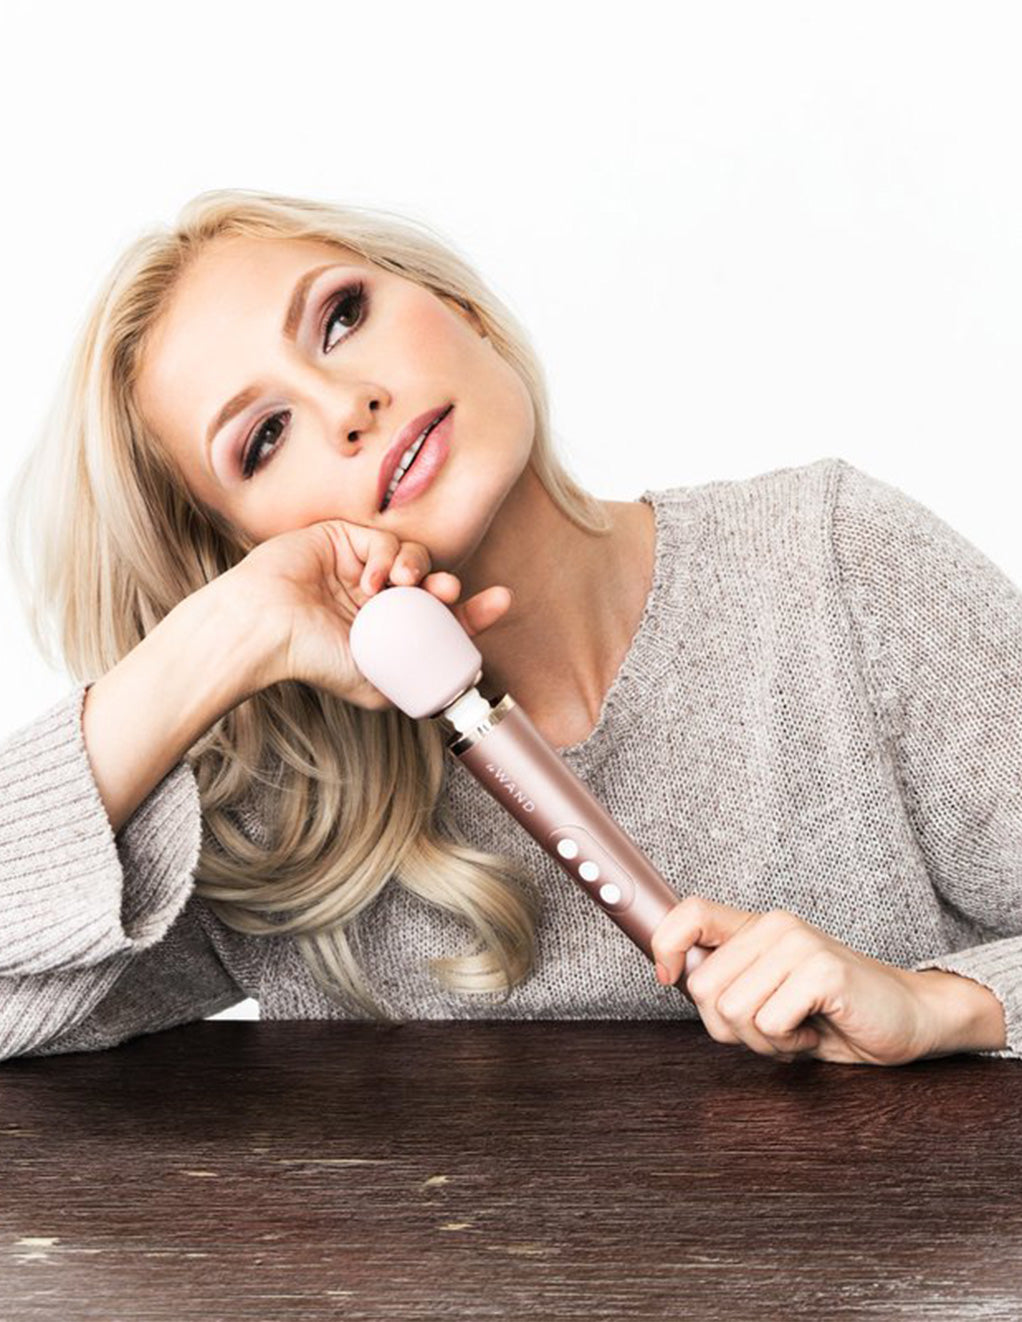 Le Wand Petite Rechargeable Massager Rose Gold Handheld By A Model